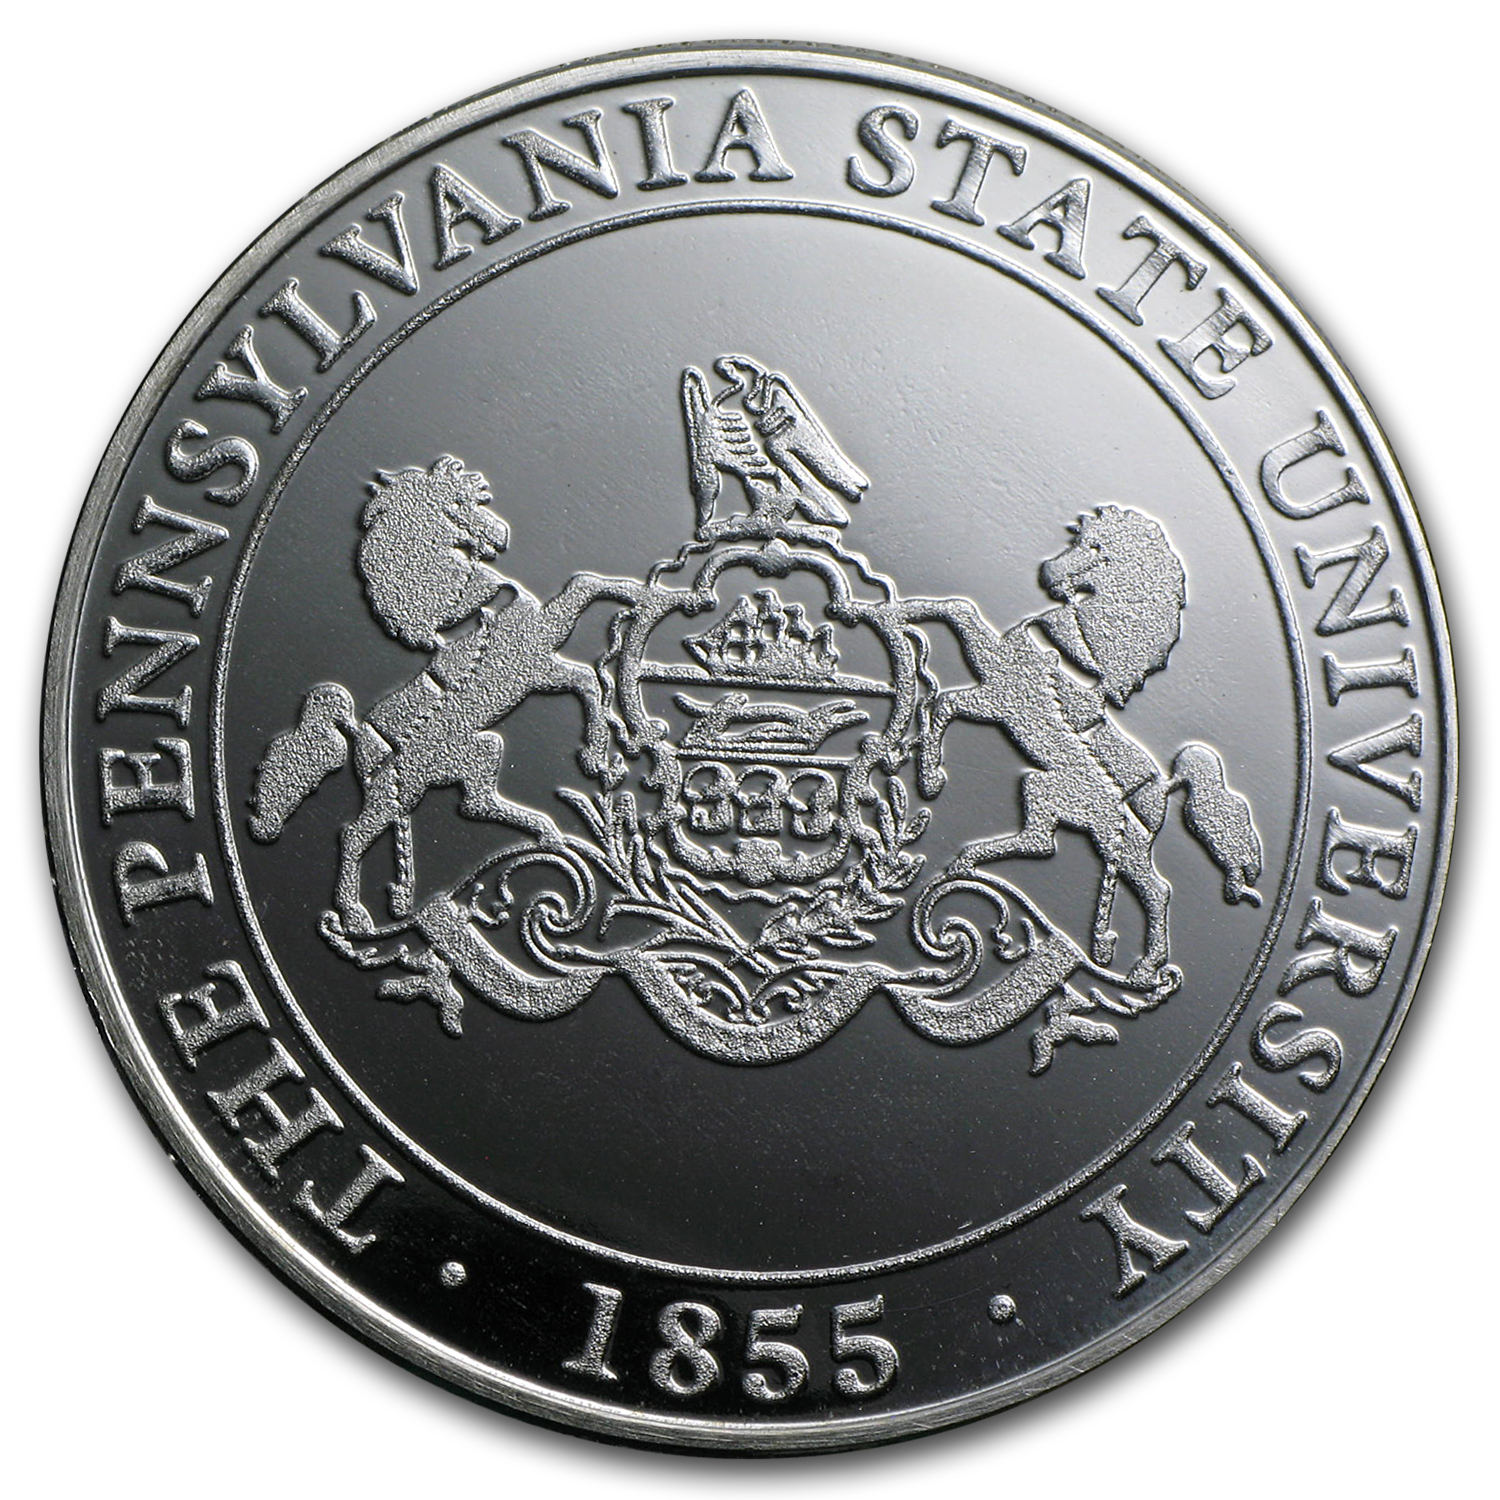 1 oz Pennsylvania State University Silver Round